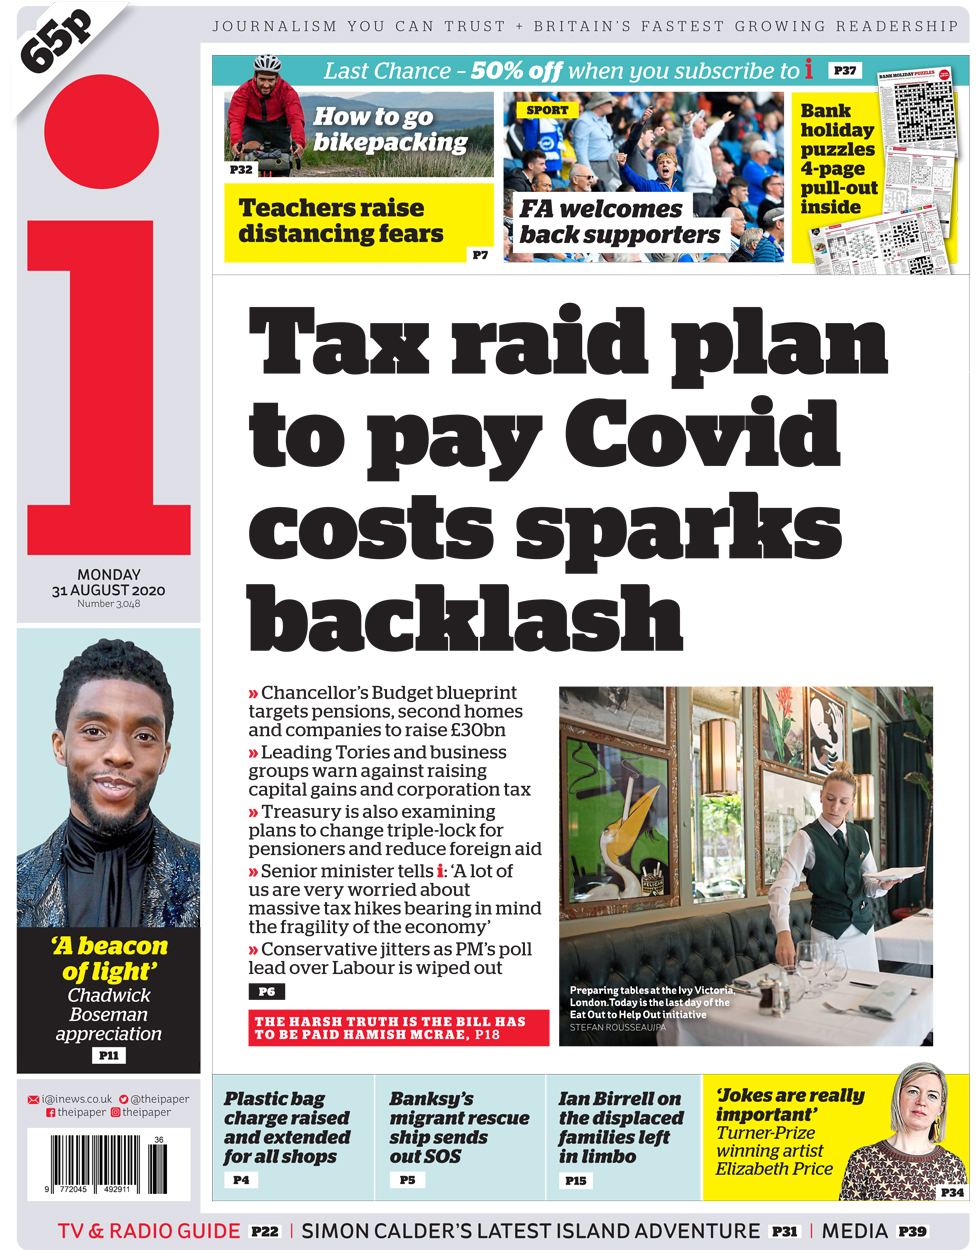 The i front page 31 August 2020